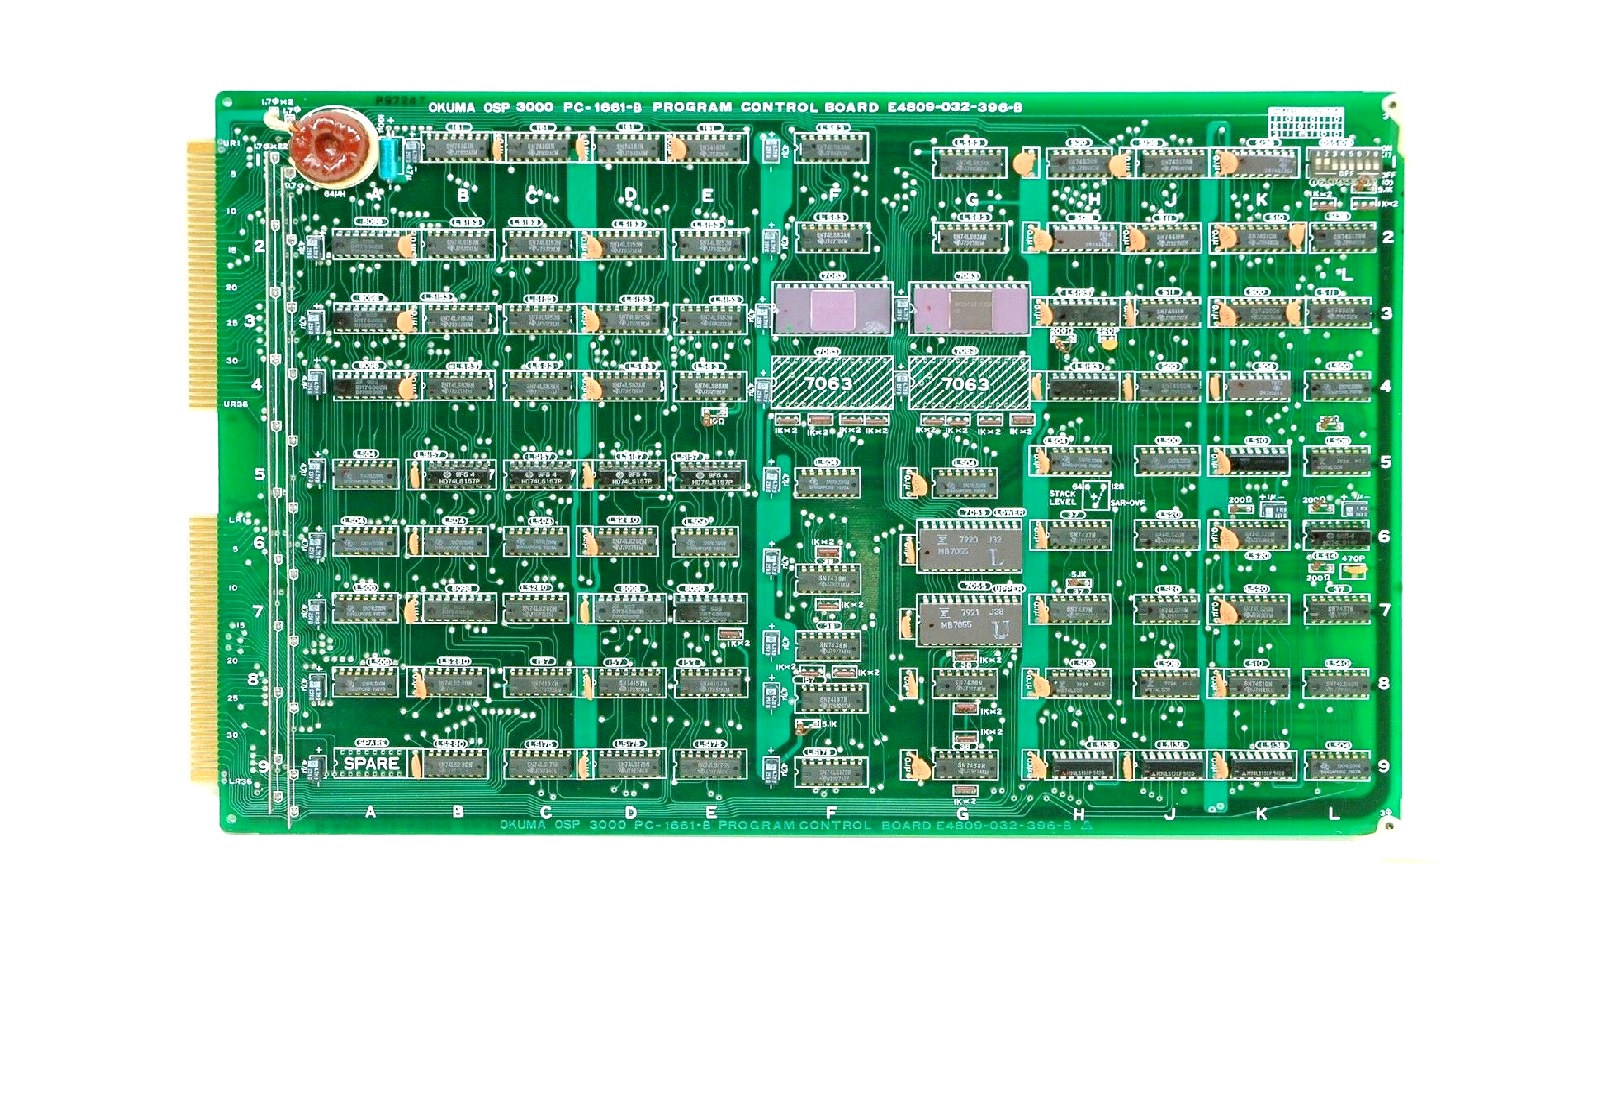 E4809-032 Circuit and Control Boards